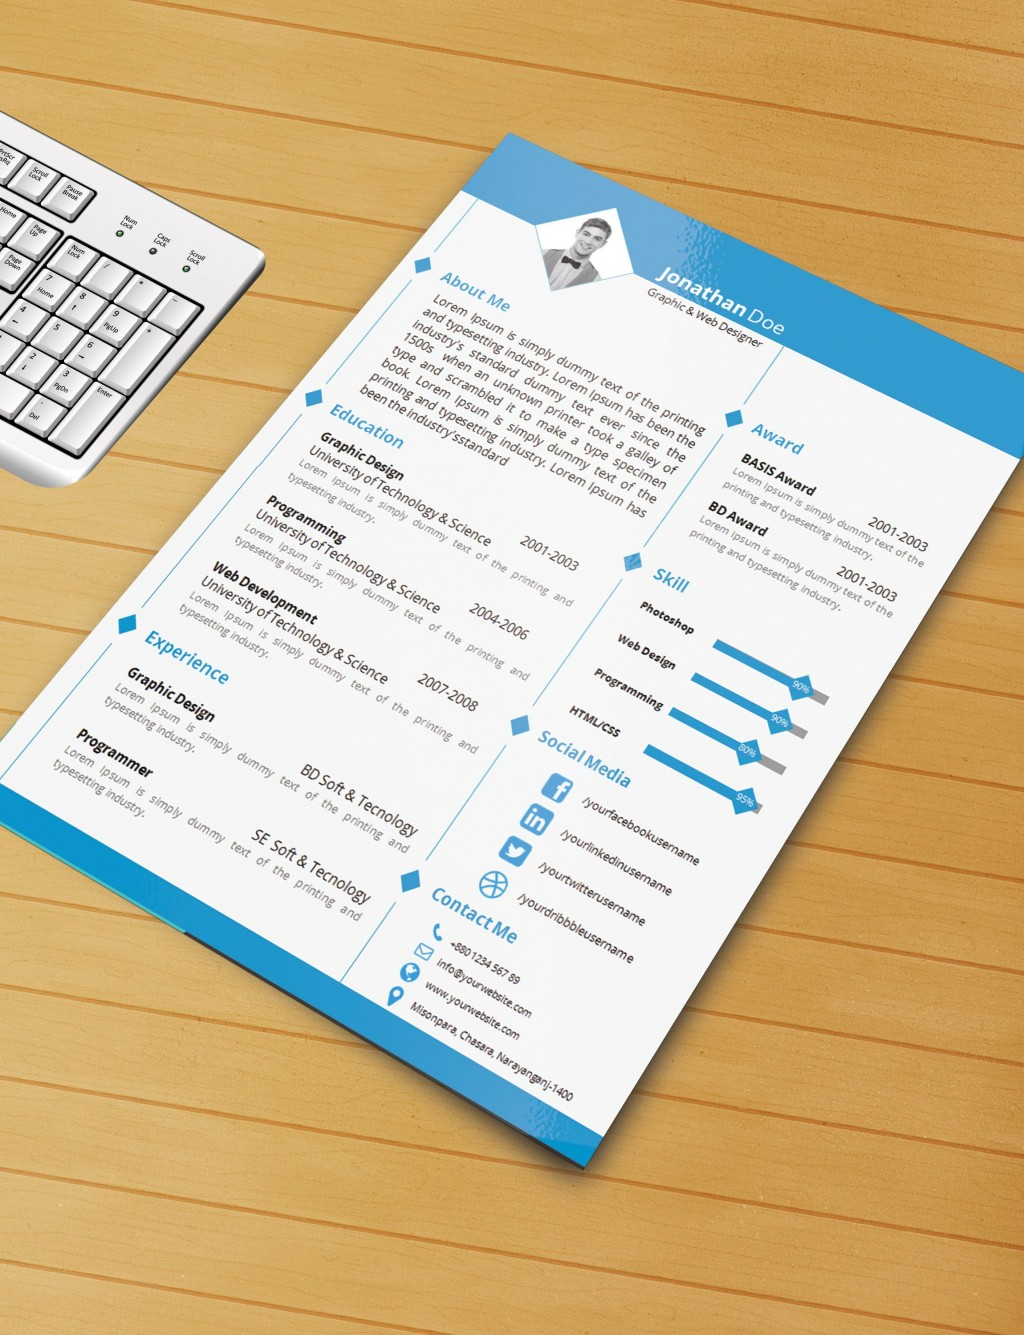 002 Frightening M Word Template Free Download Example  Microsoft Office Invoice Letterhead 2003 ResumeLarge